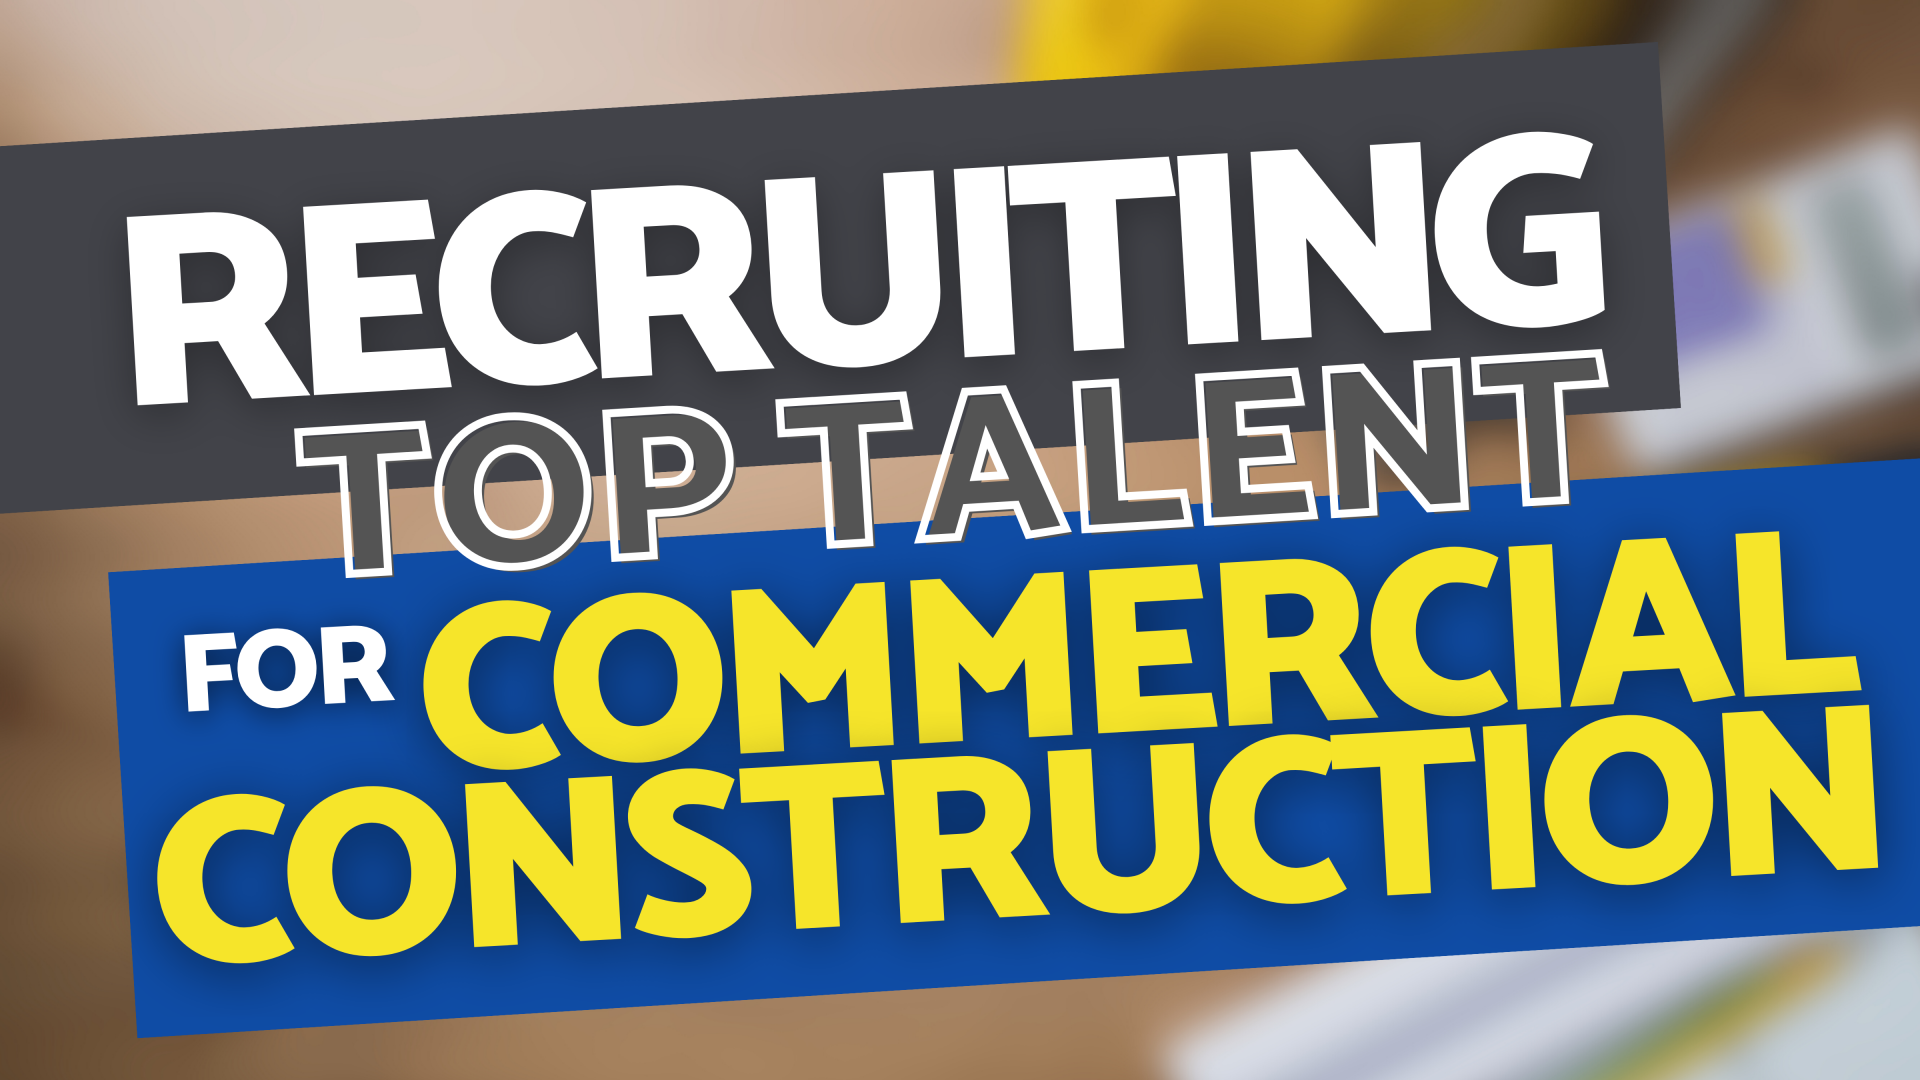 Recruiting Top Talent Commercial Construction